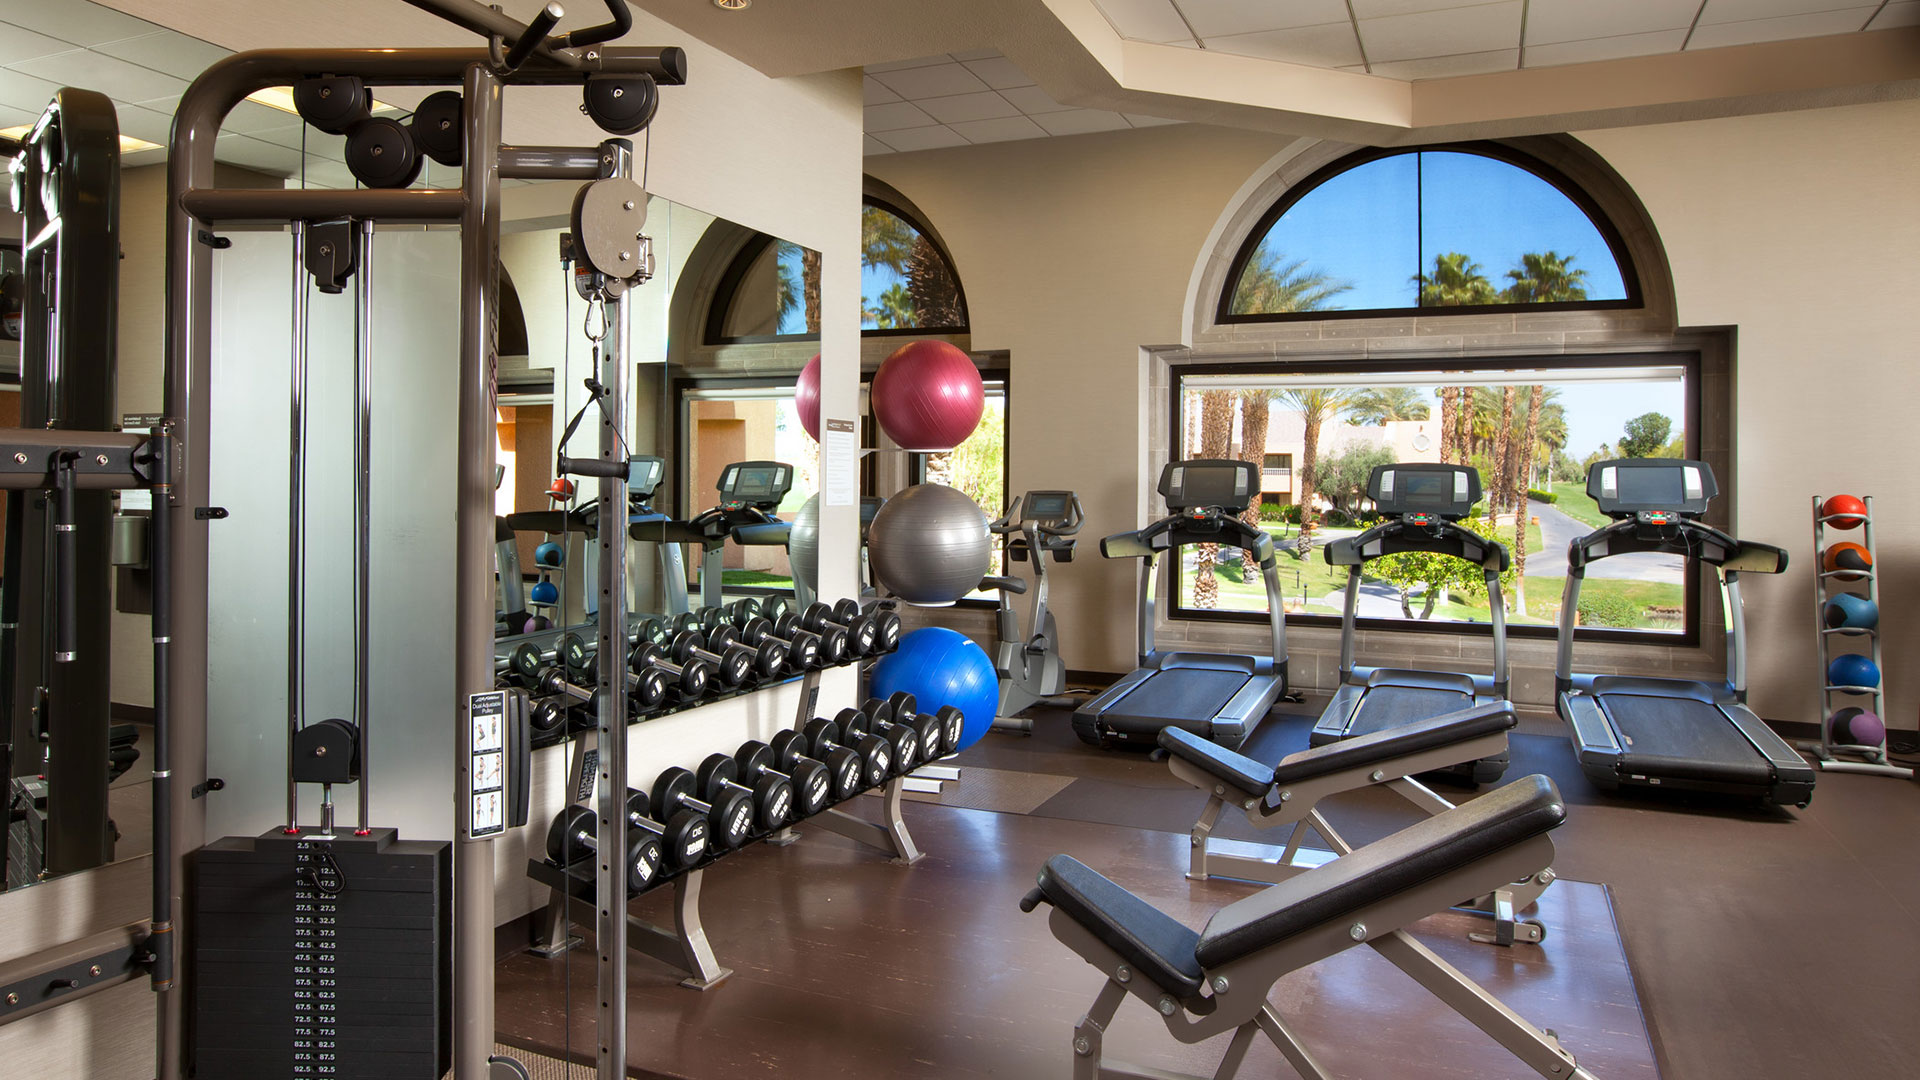 westin mission hills fitness center